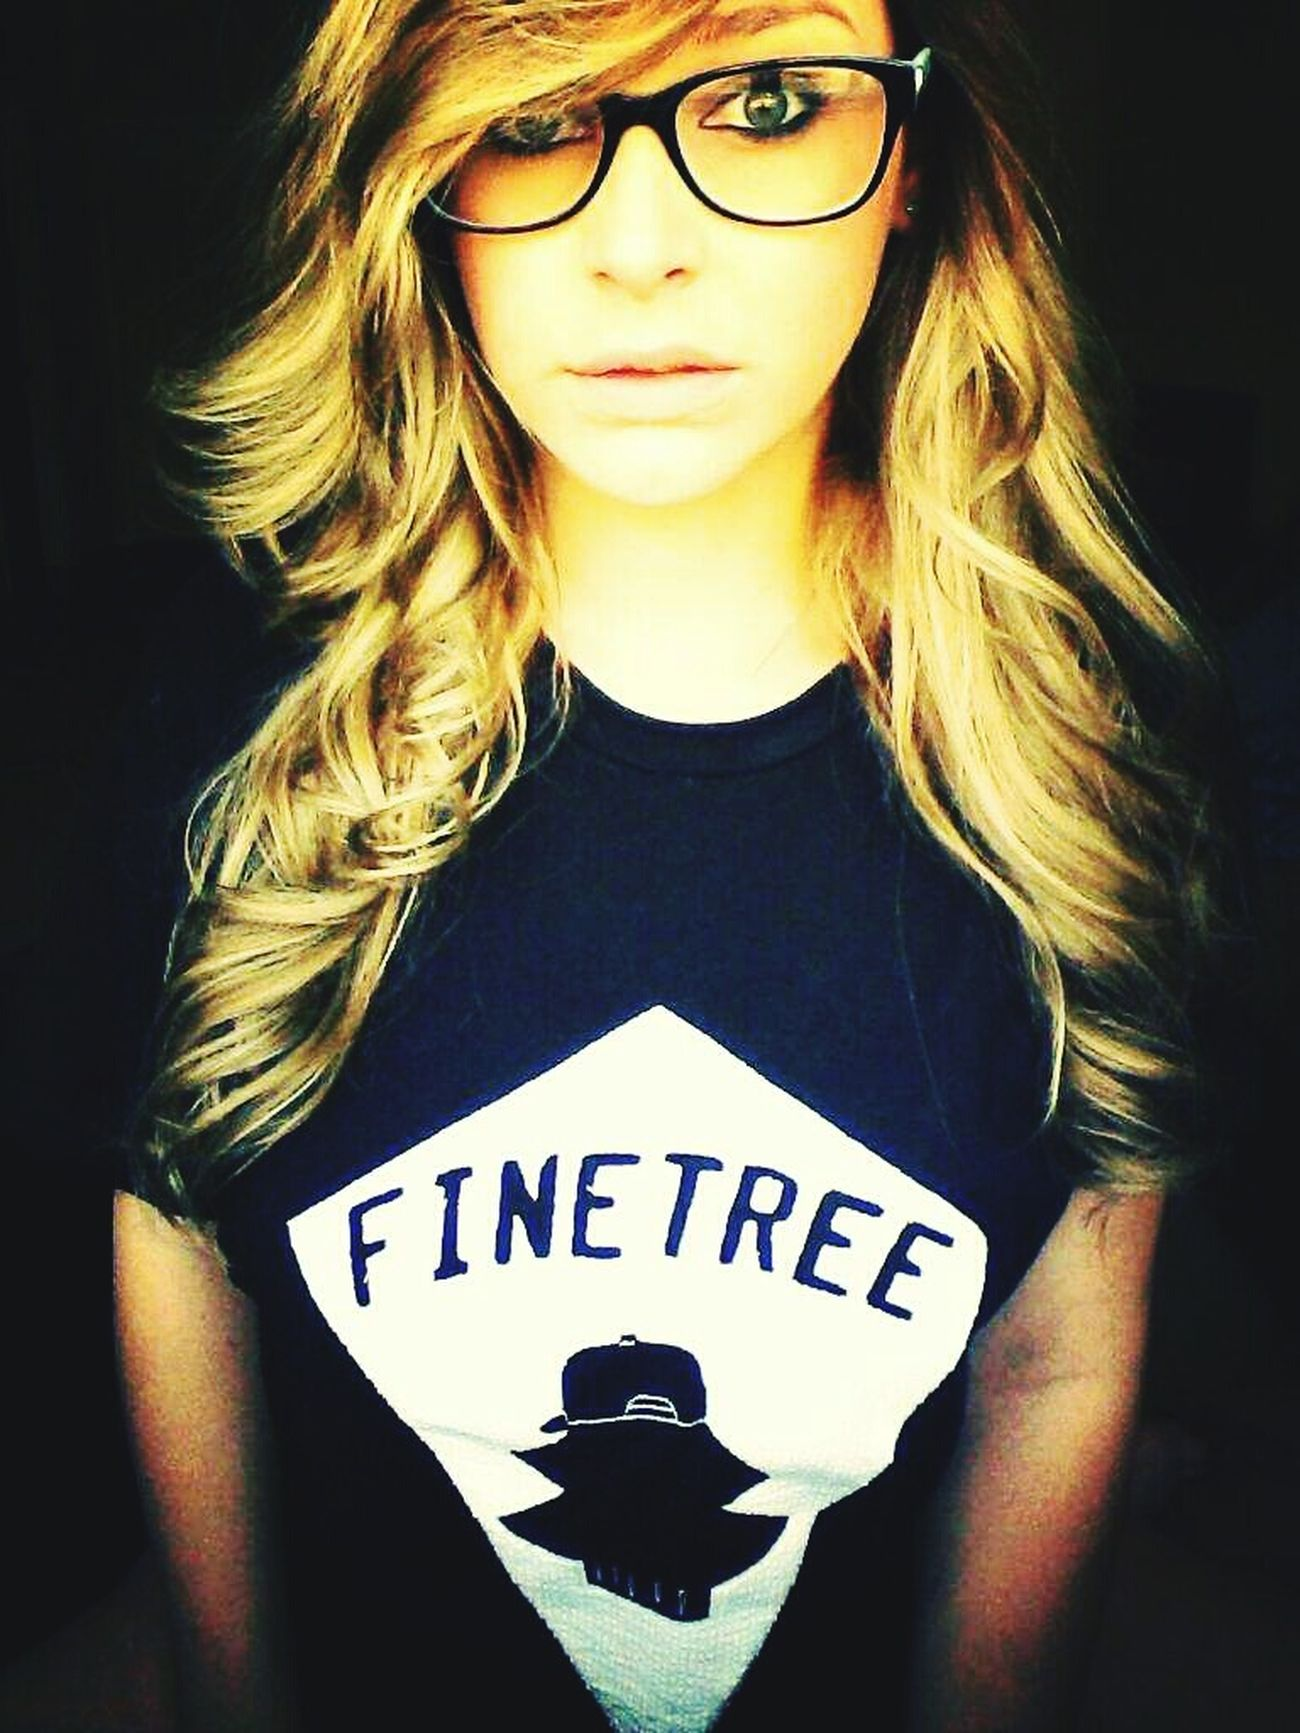 Finetree Clothing Line